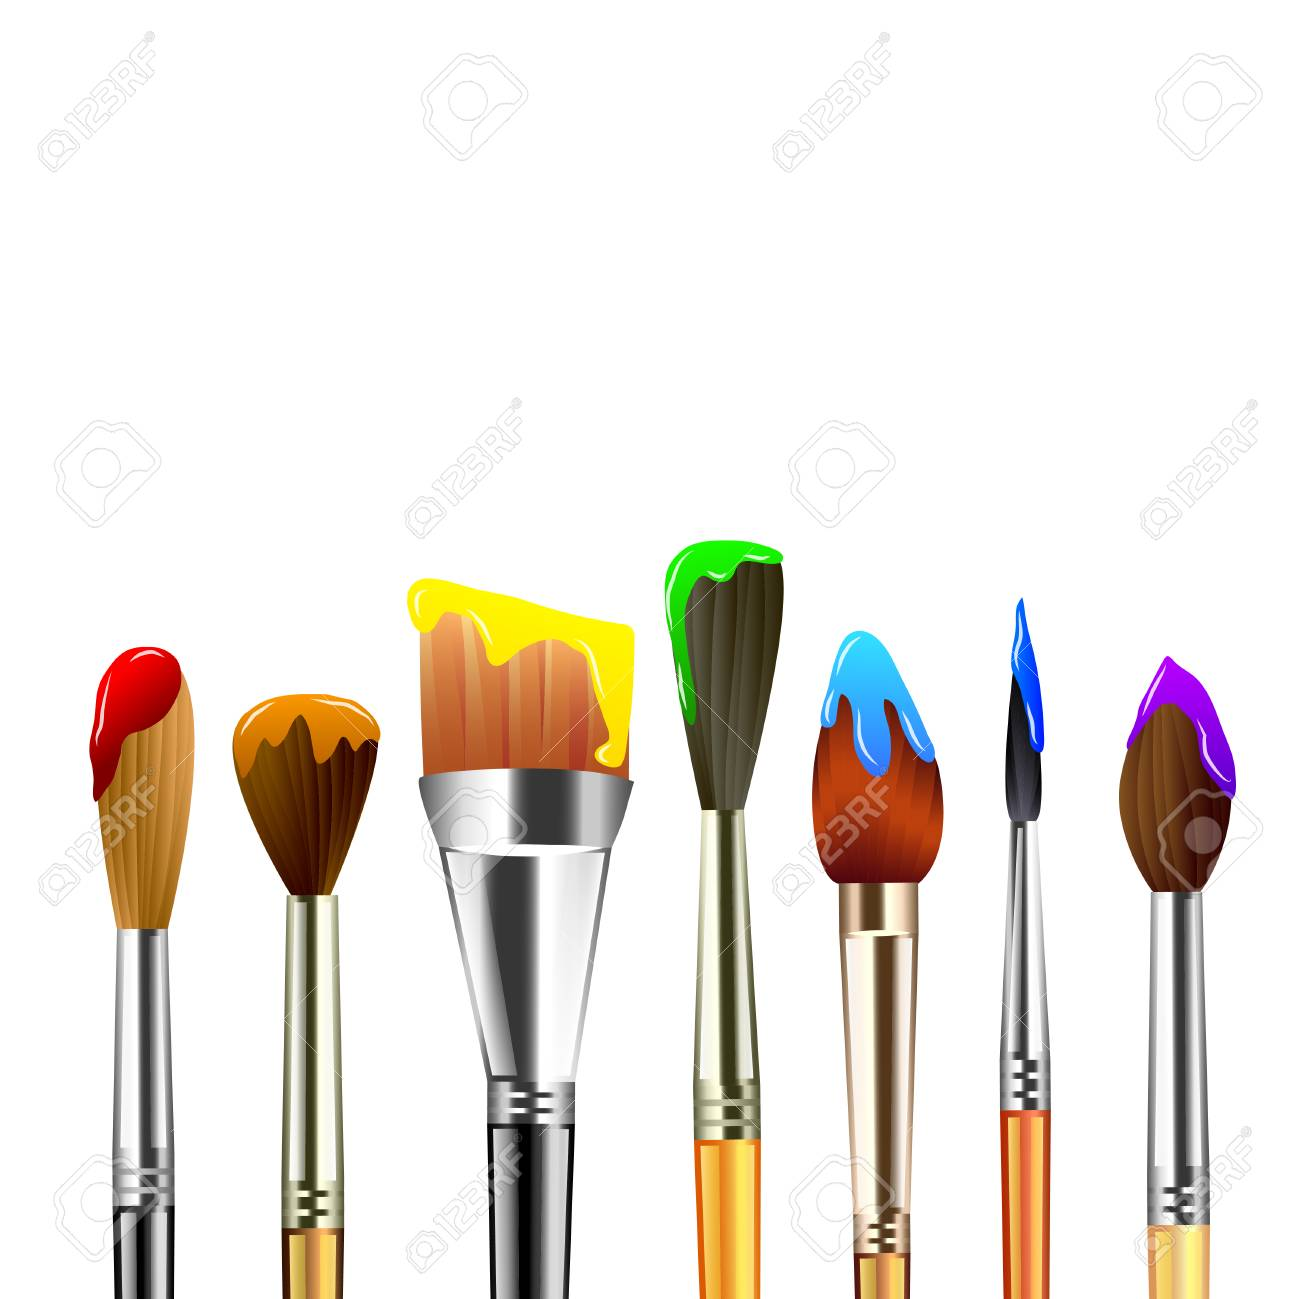 Artist paint brushes isolated on white background vector.